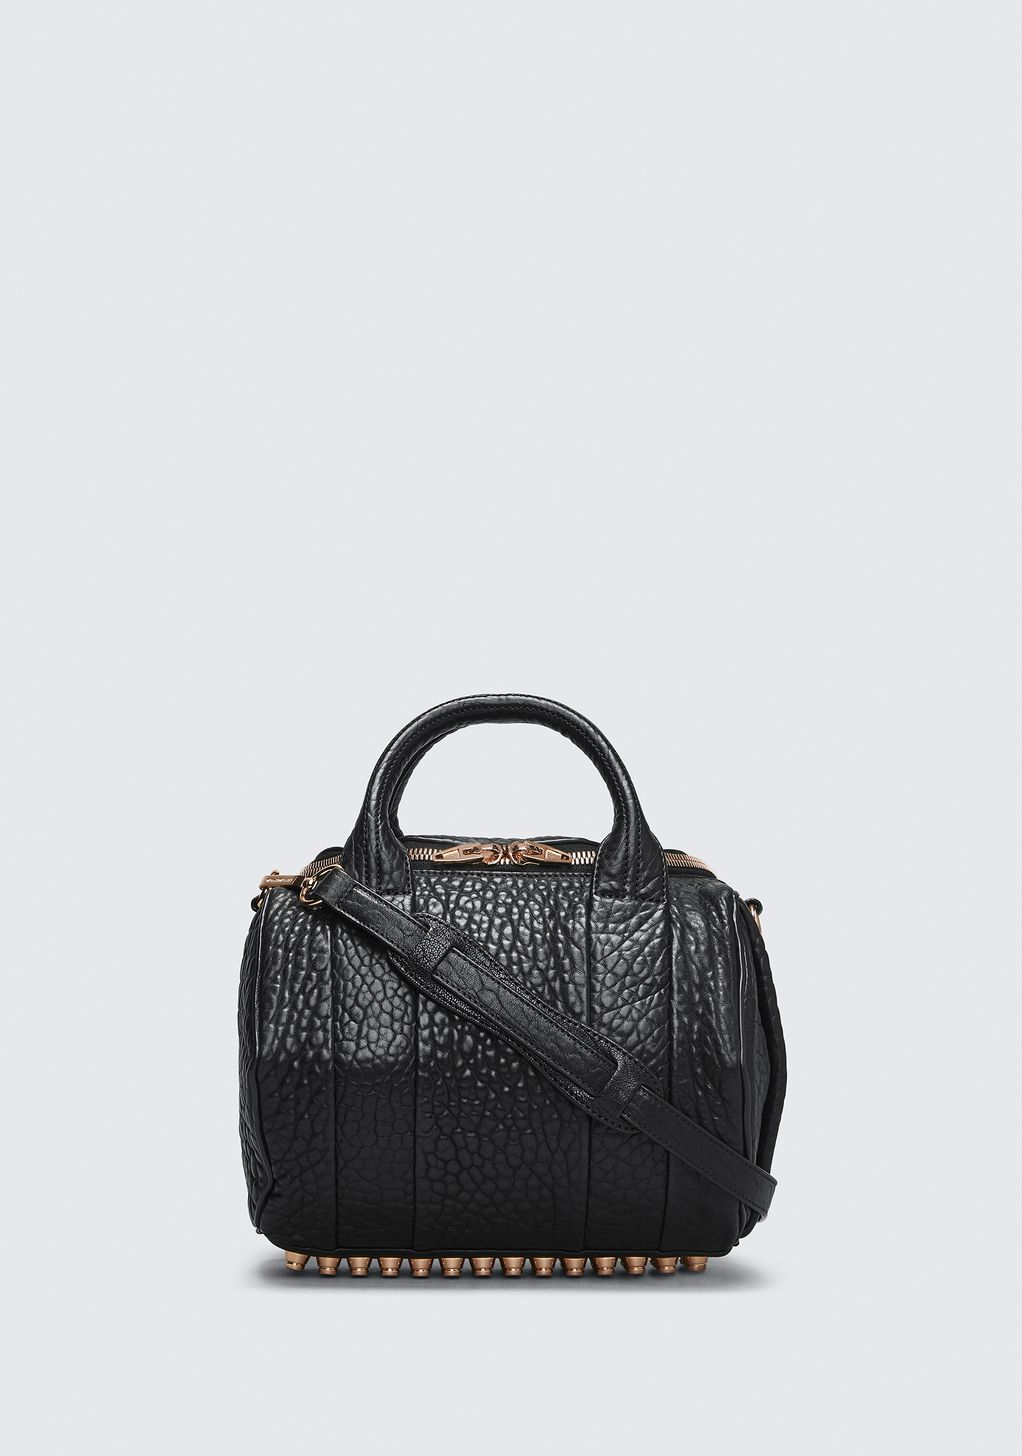 ROCKIE IN PEBBLED BLACK WITH ROSE GOLD | Shoulder Bag | Alexander ...